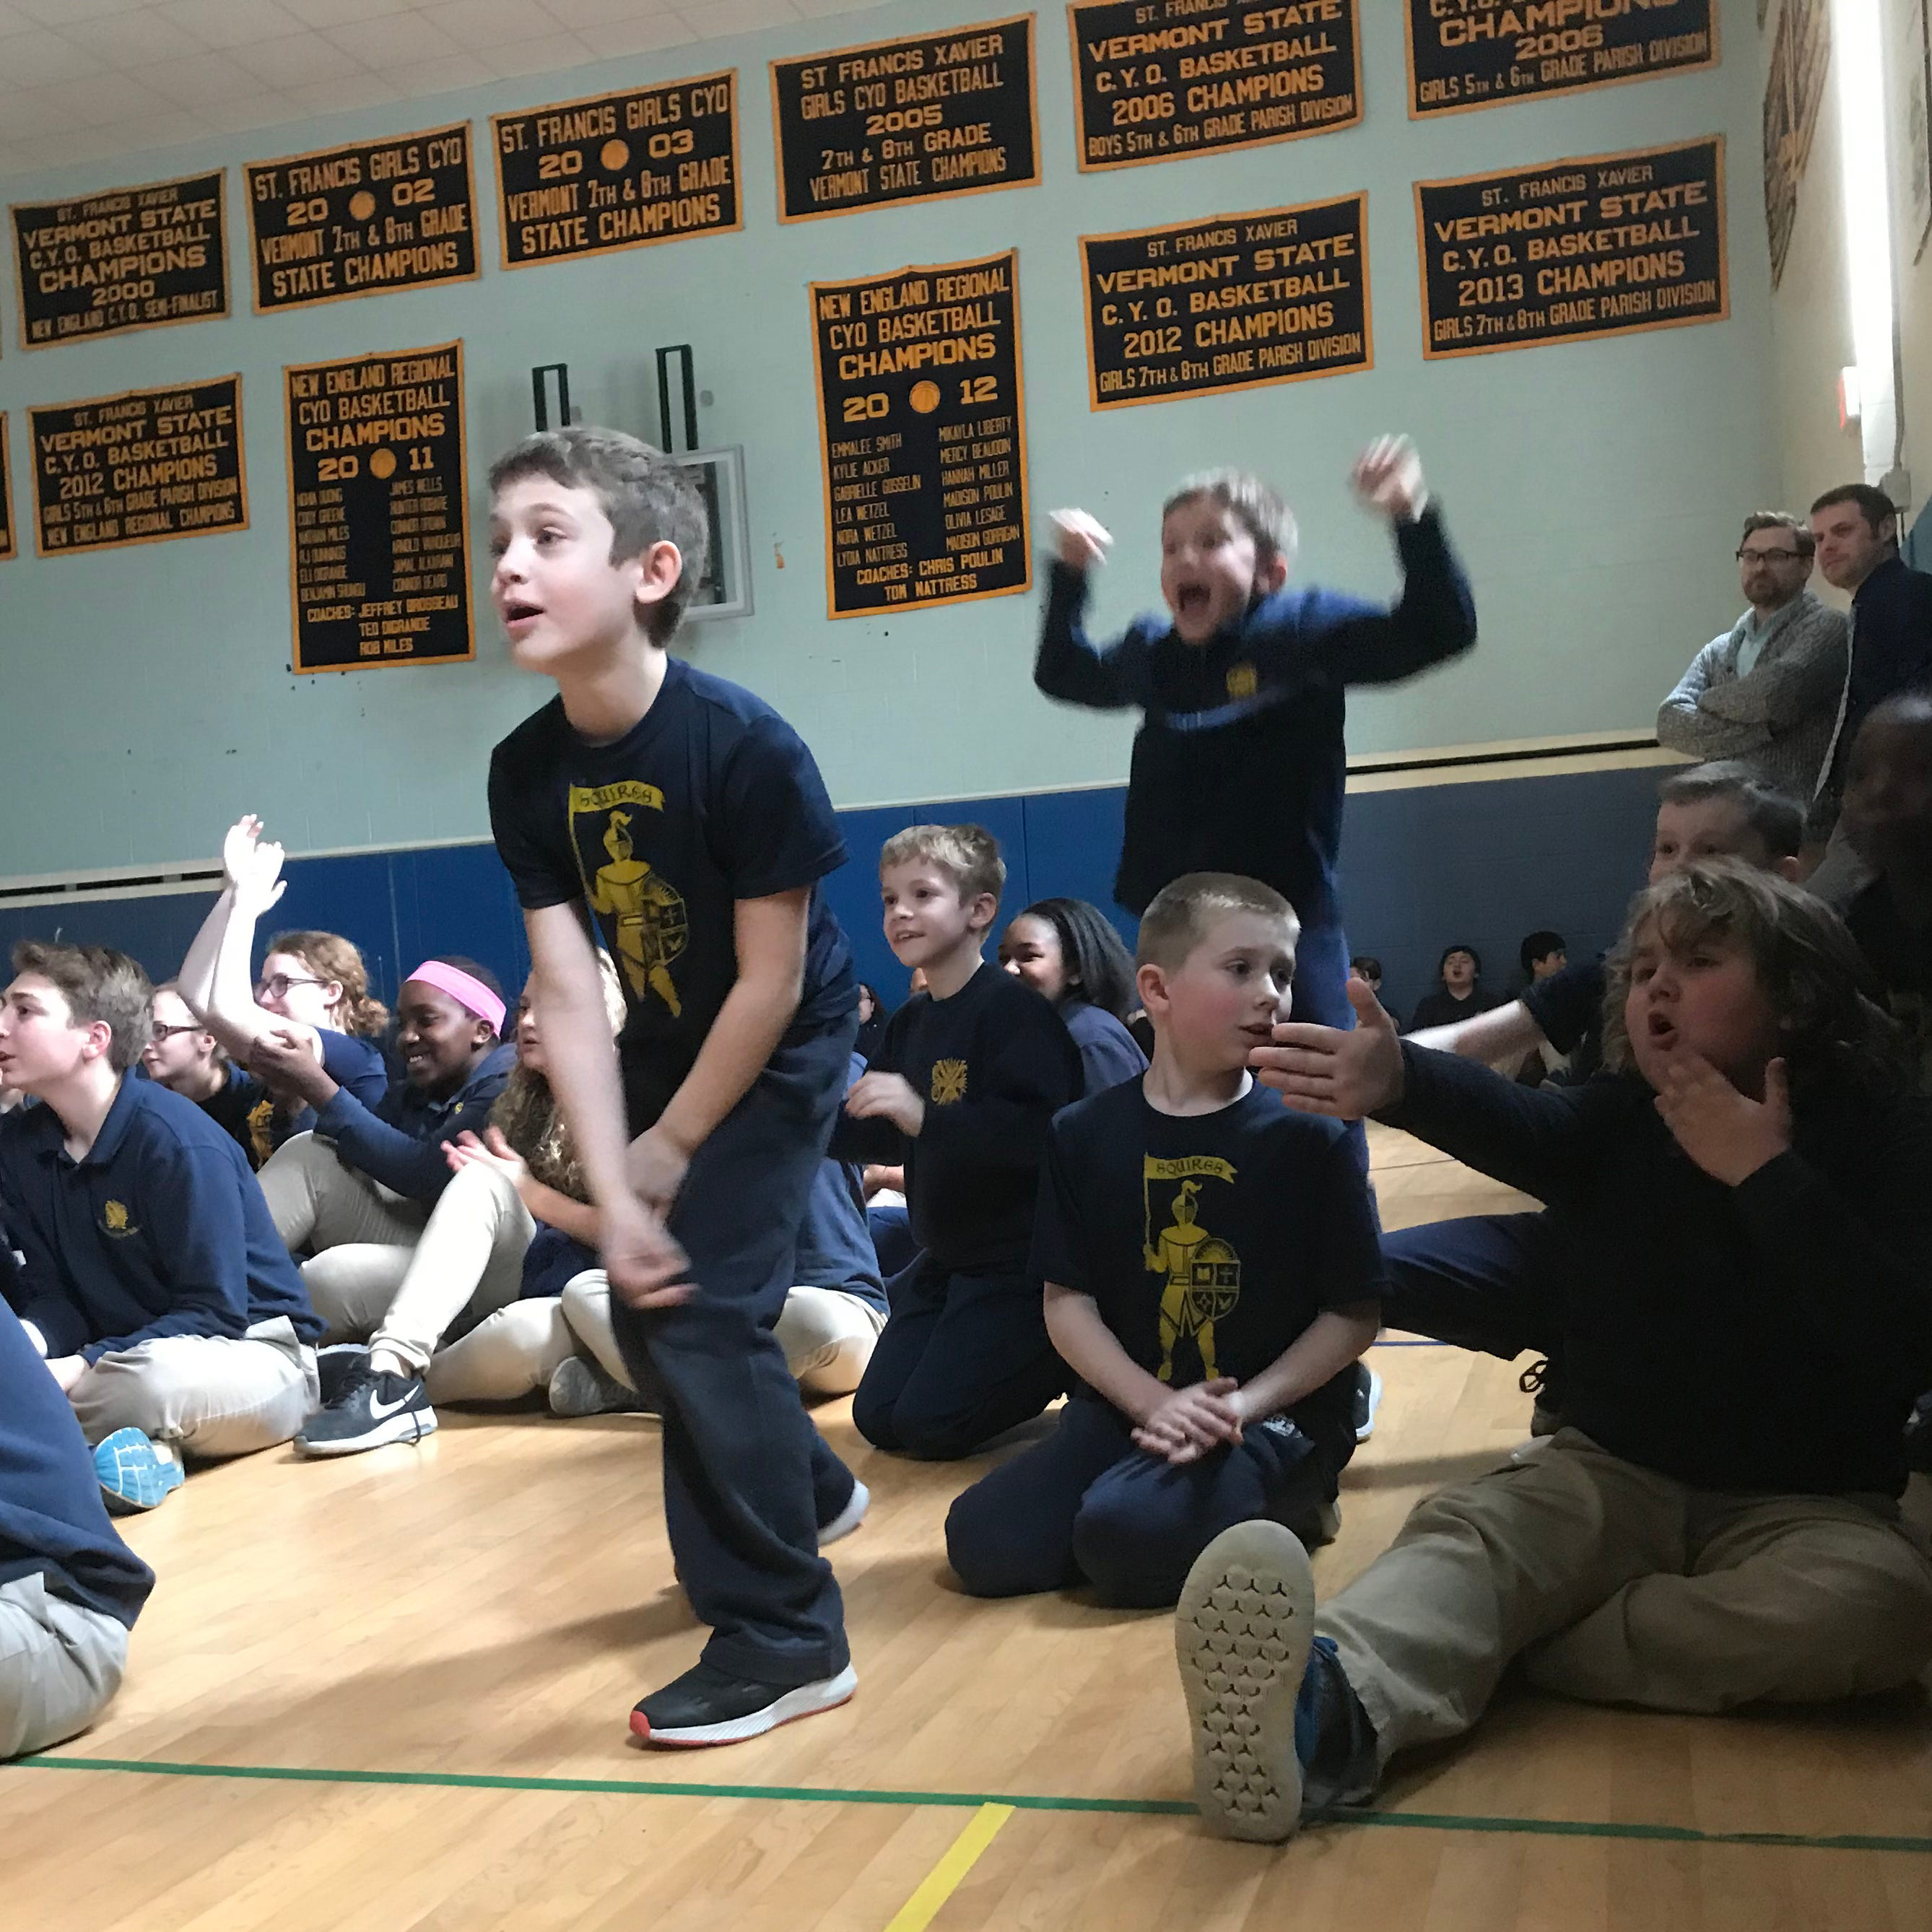 UVM star Ben Shungu's elementary school in Winooski skipped class to watch the game